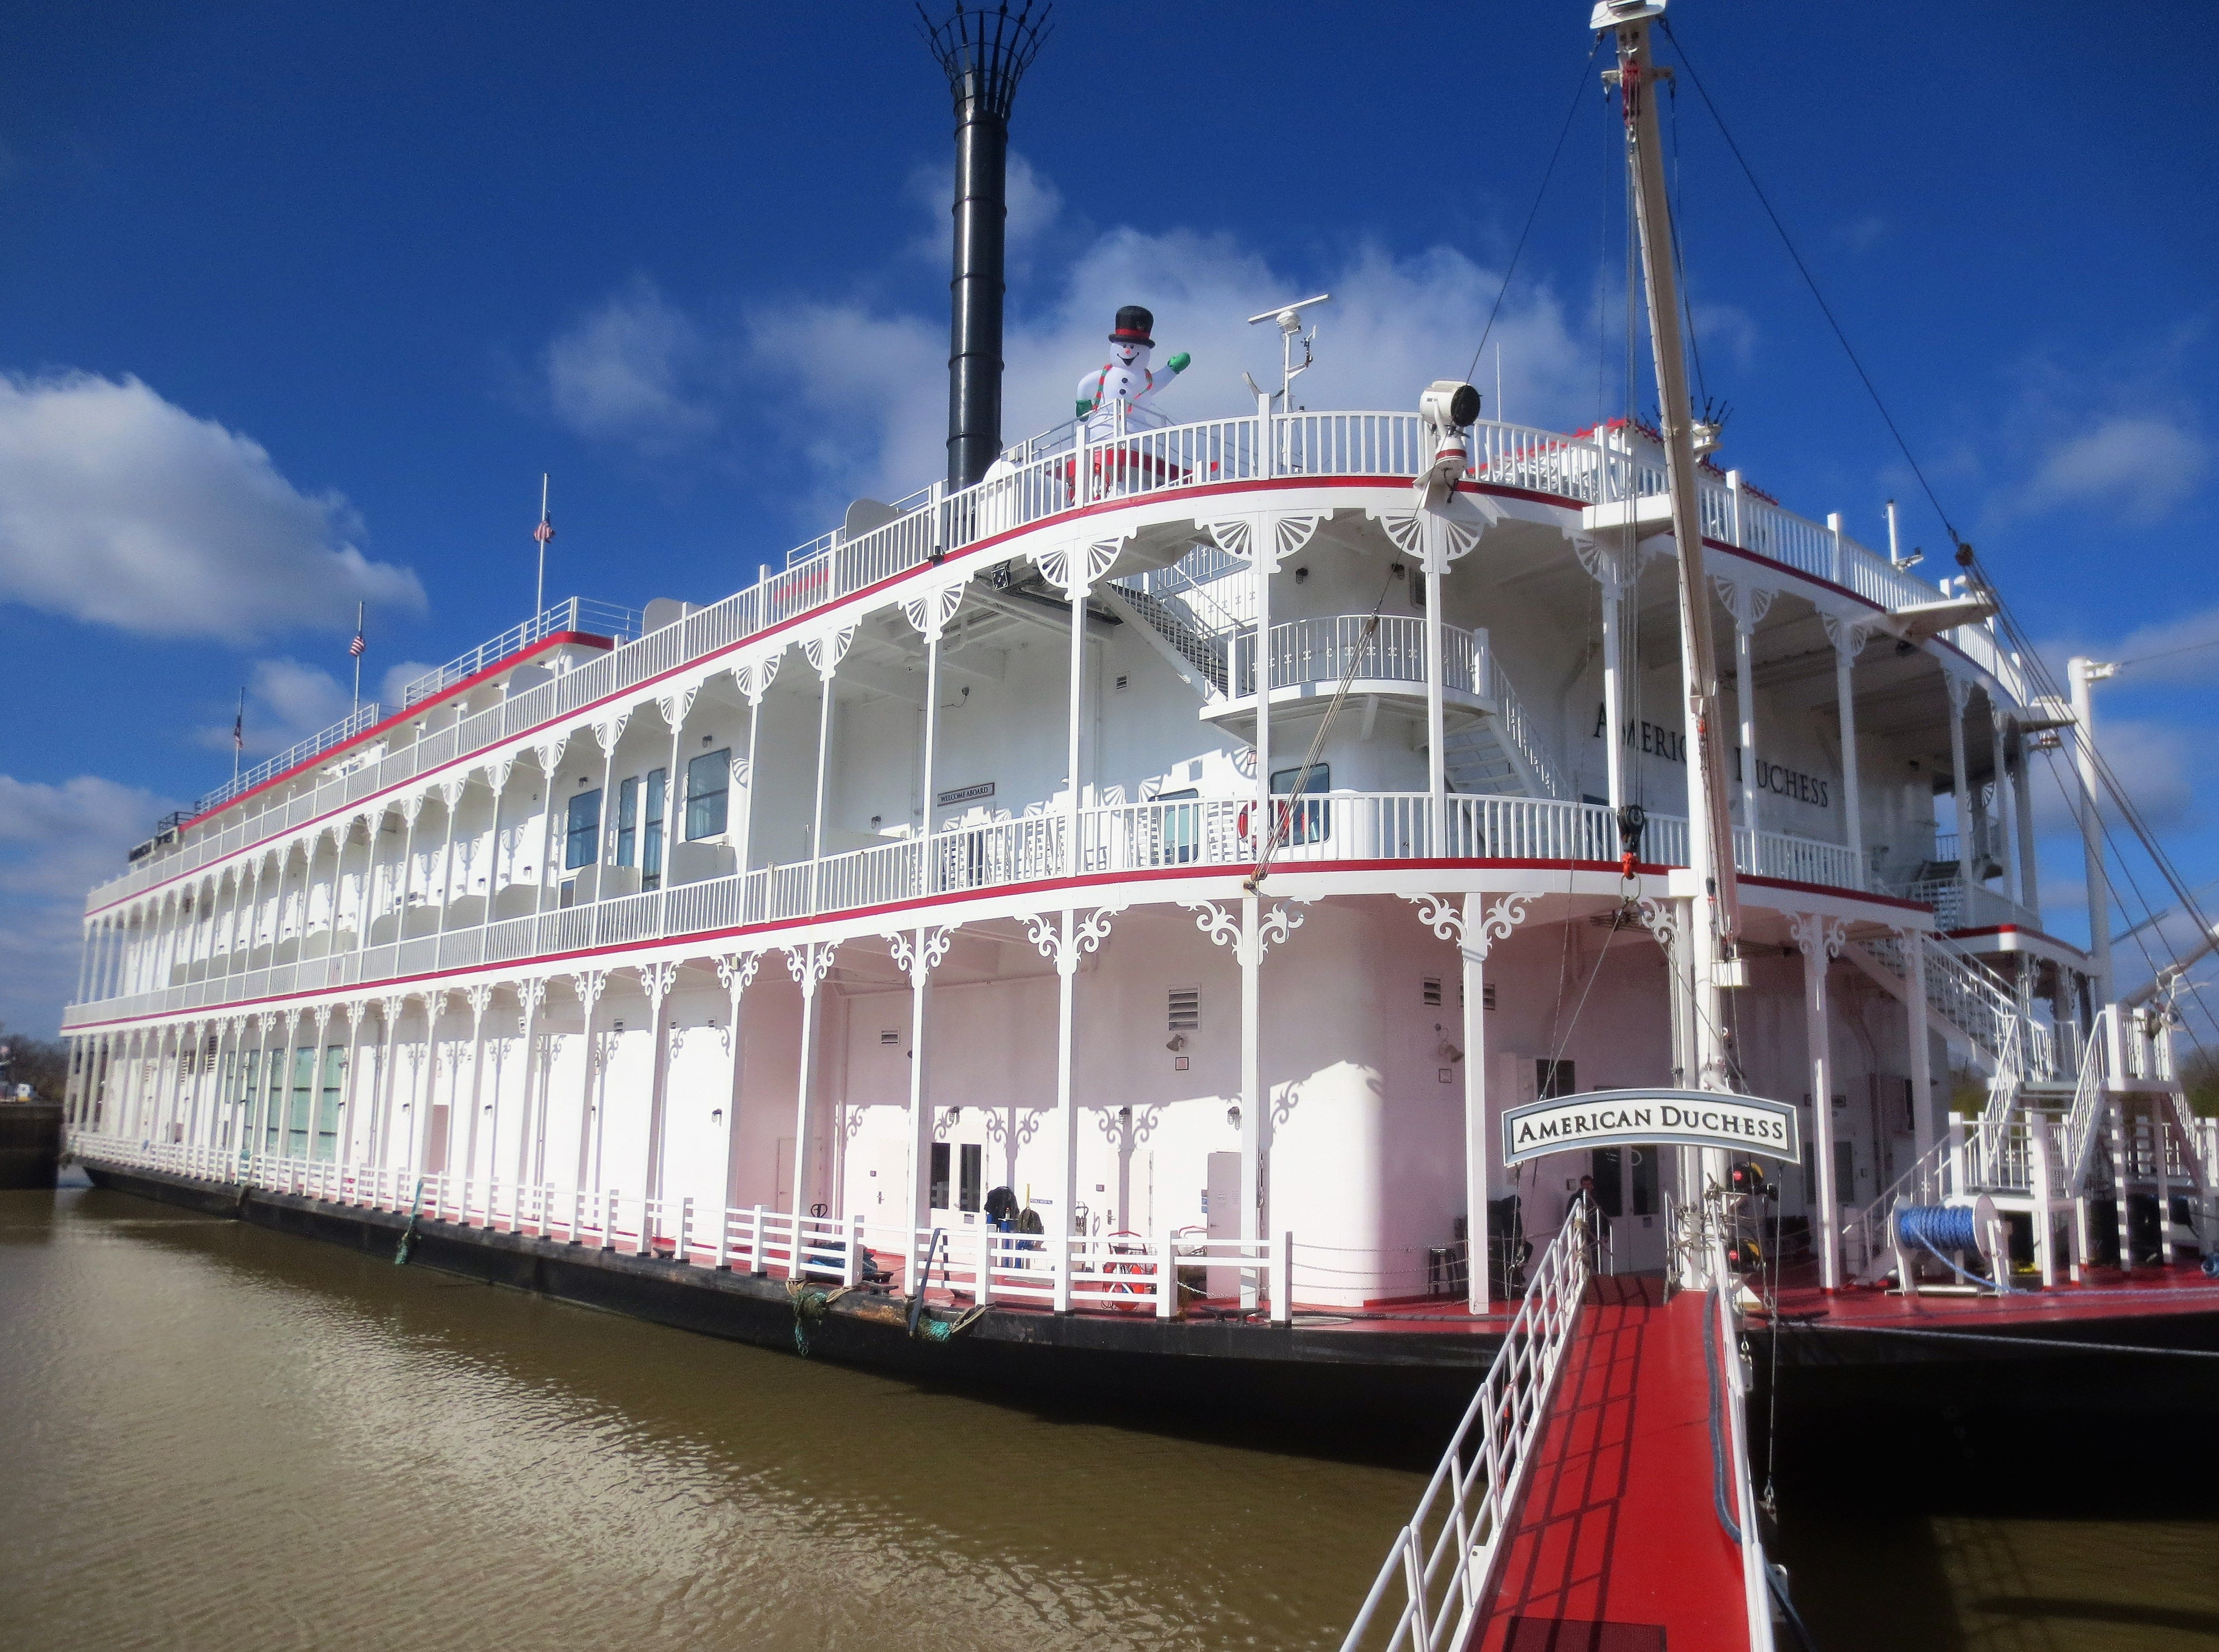 Exploring antebellum history on a Mississippi River cruise